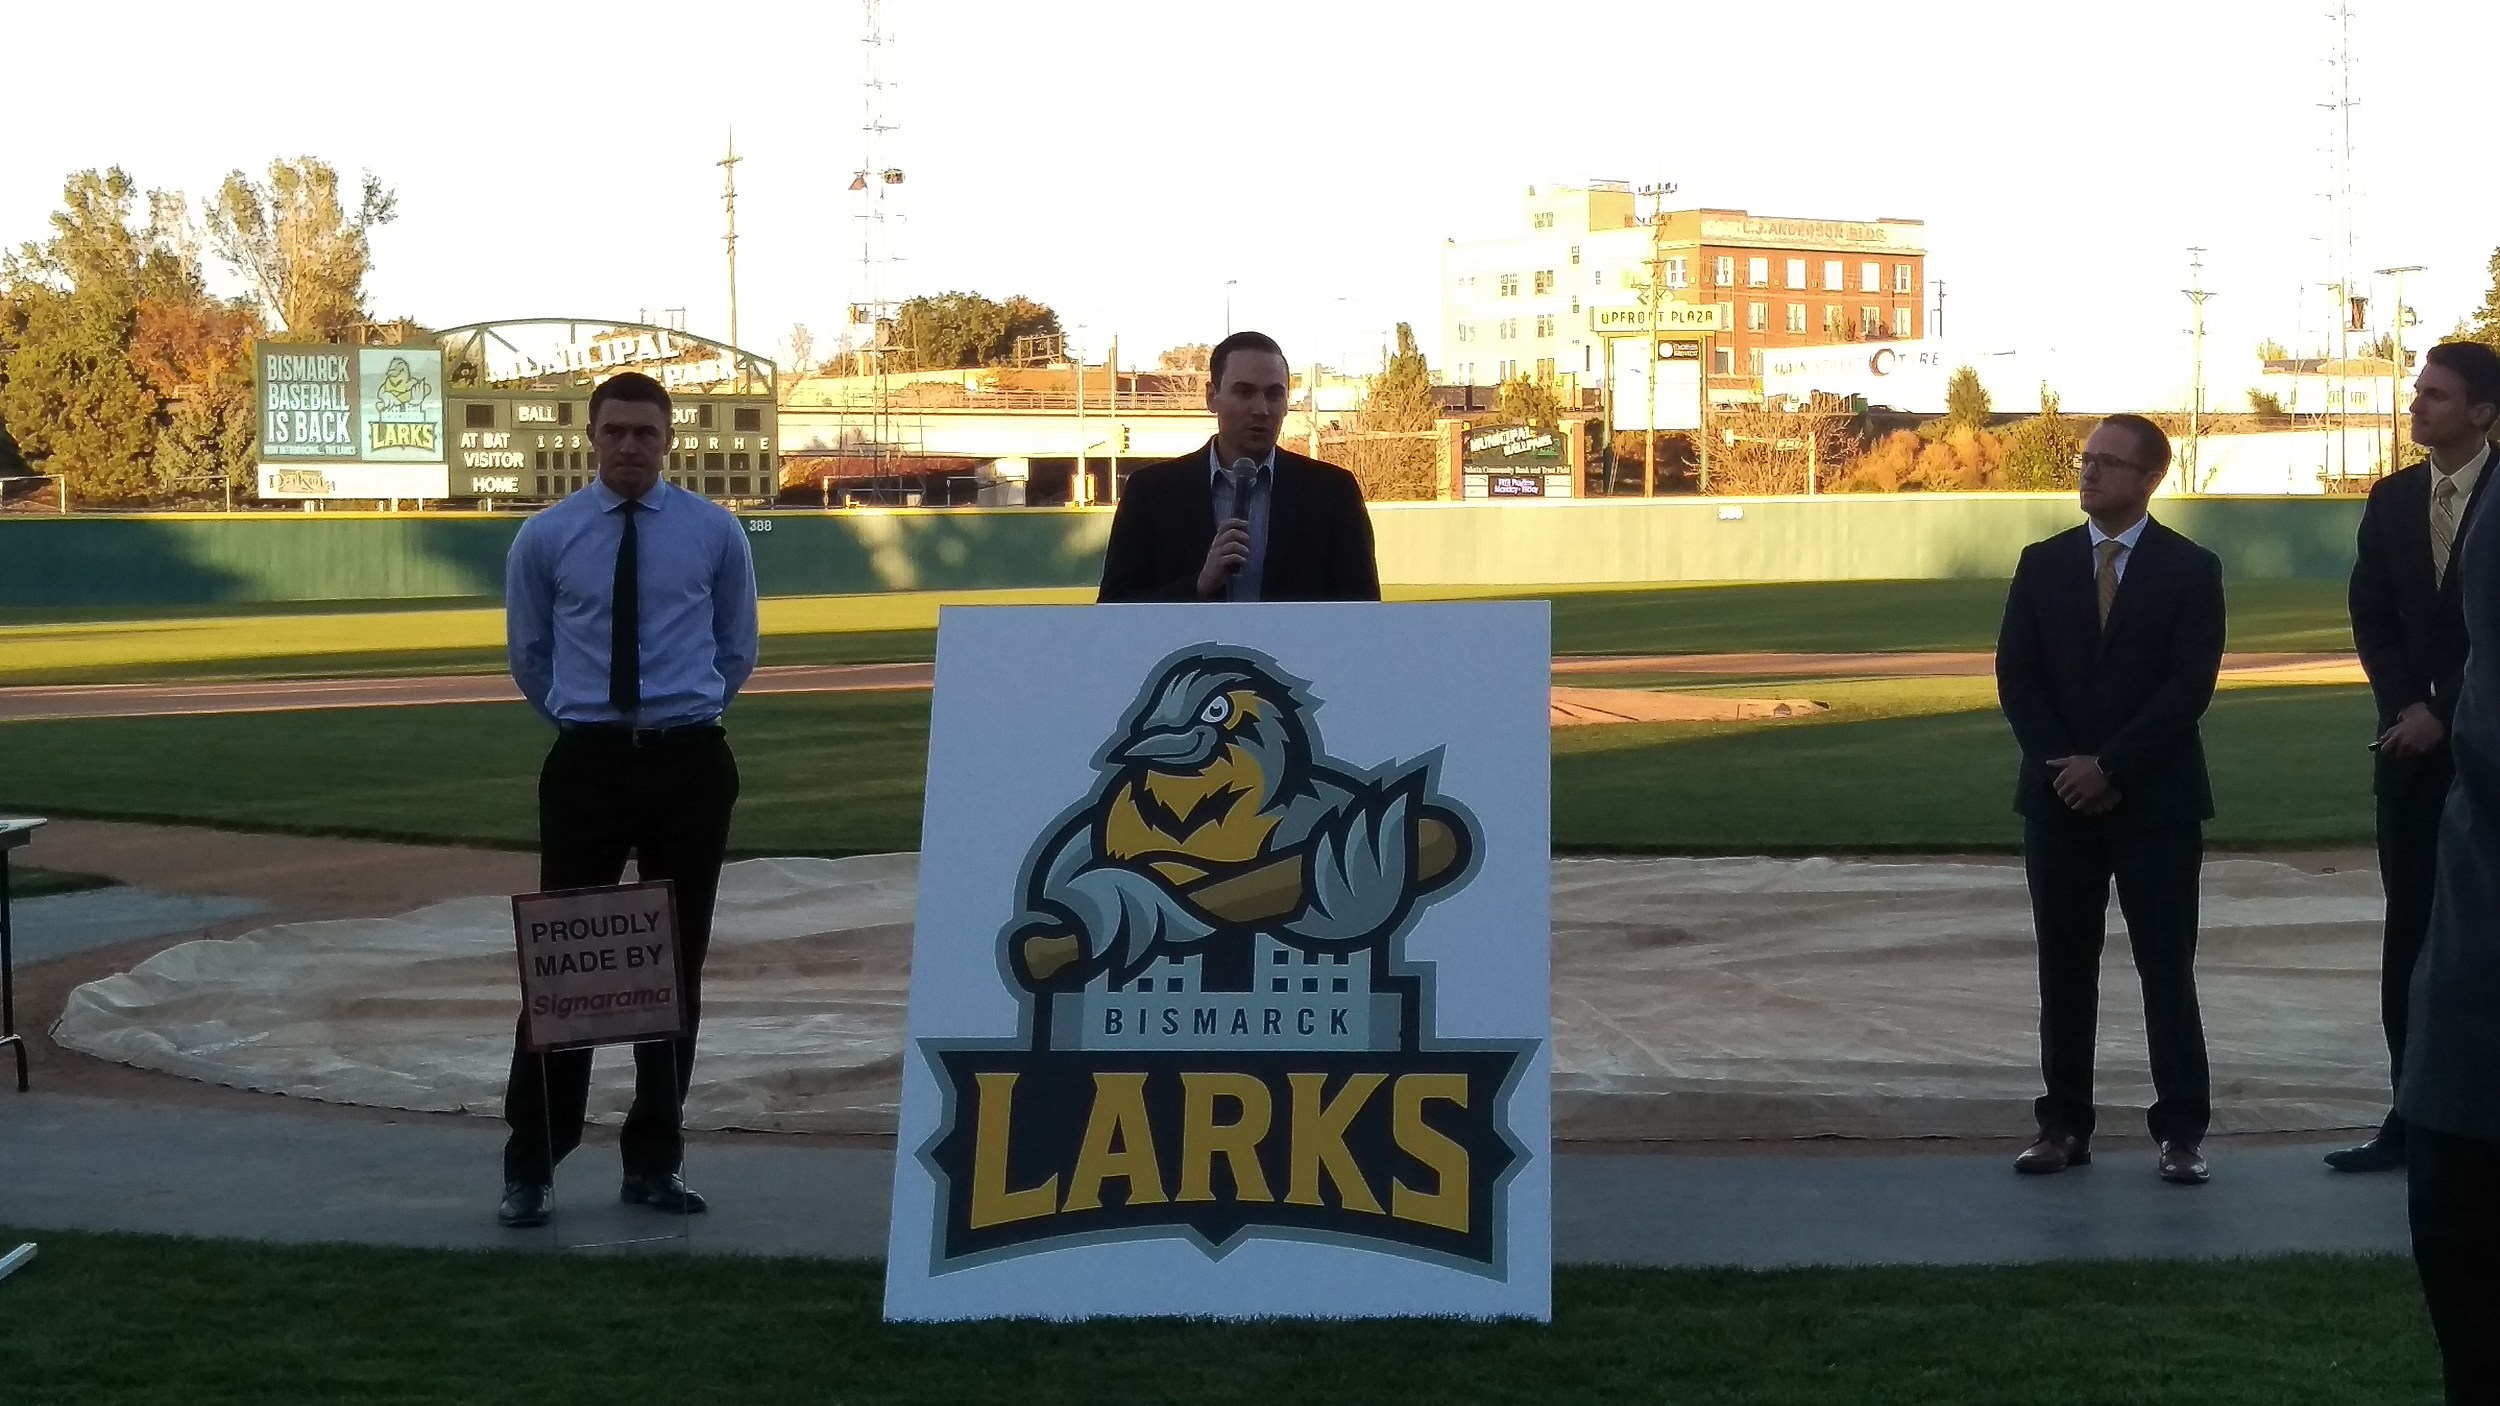 northwoods league projected to be top summer baseball league in 2017